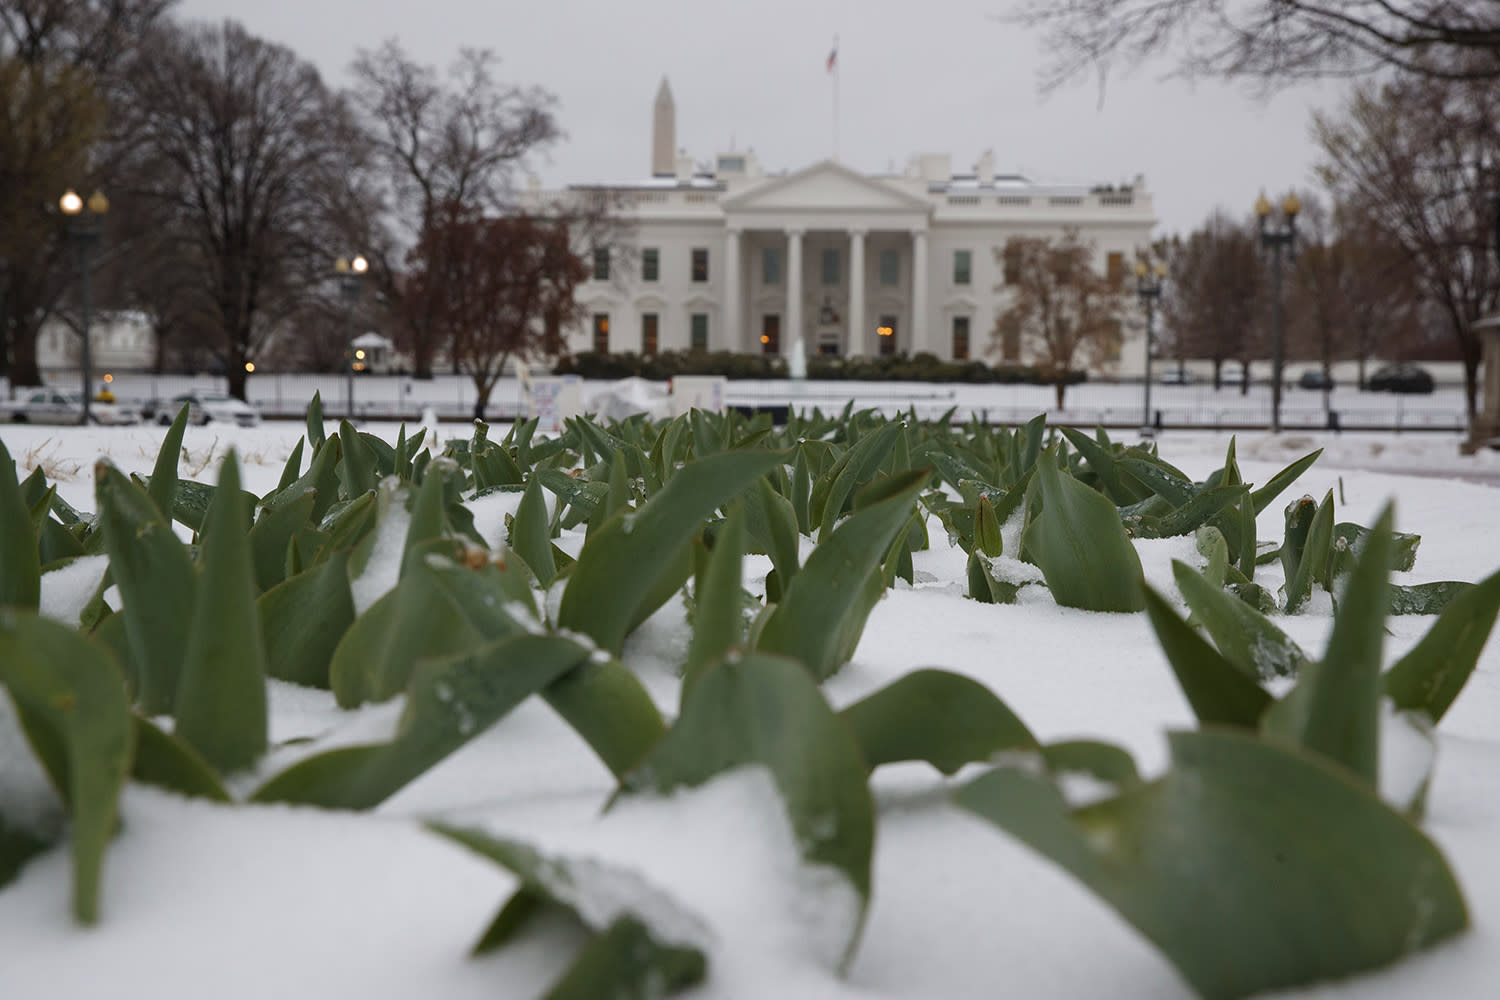 <p>Snow covers the ground in Lafayette Park across from the White House in Washington, Tuesday, March 14, 2017. A late-season storm is dumping a messy mix of snow, sleet and rain on the mid-Atlantic, complicating travel, knocking out power and closing schools and government offices around the region. (Evan Vucci/AP) </p>